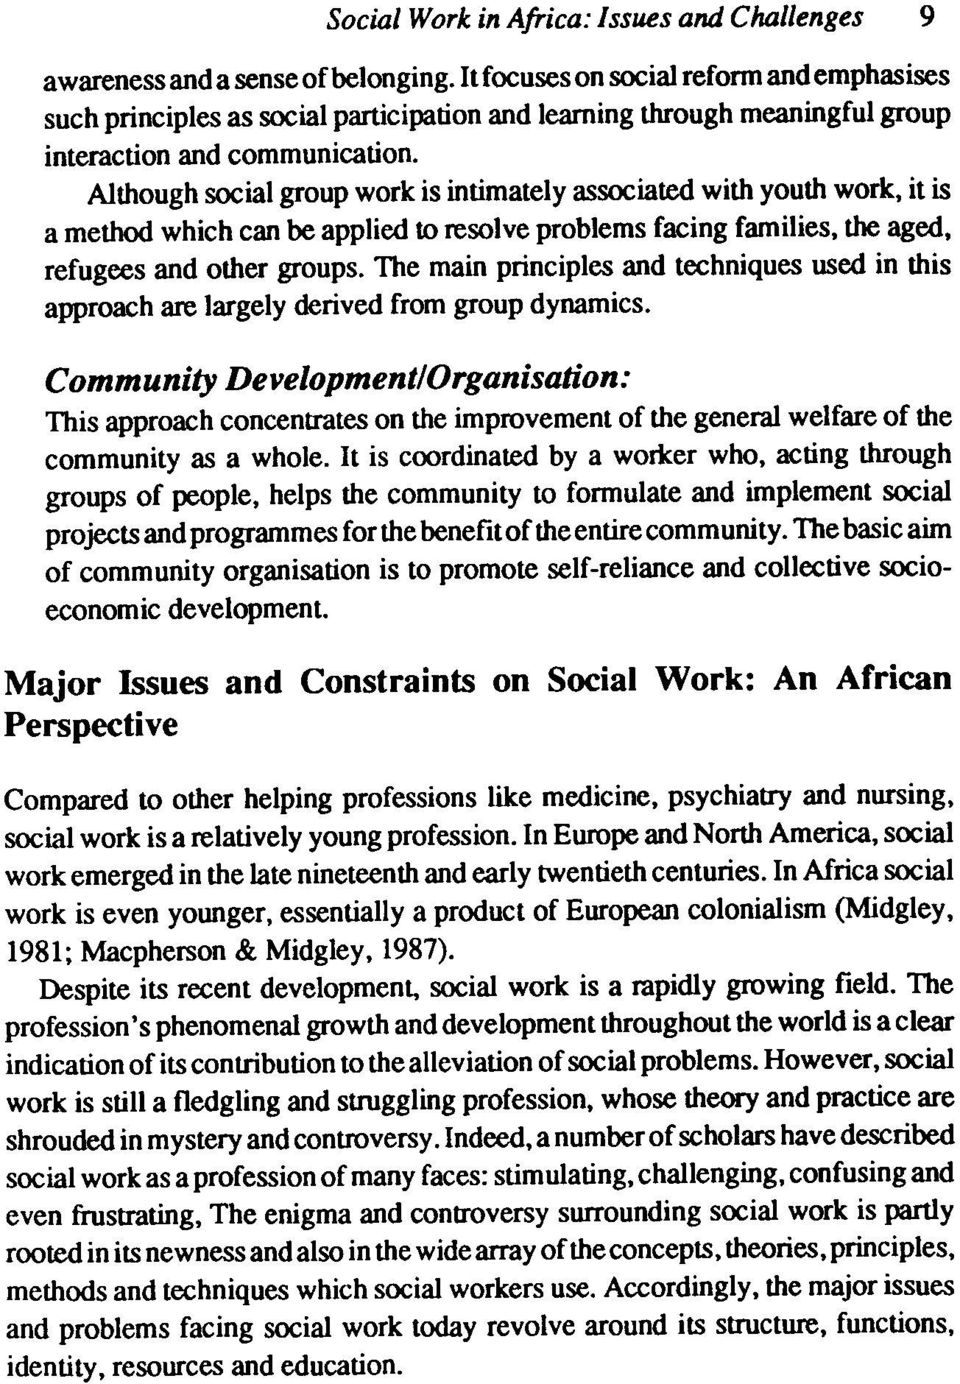 Although social group work is intimately associated with youth work, it is a method which can be applied to resolve problems facing families, the aged, refugees and other groups.